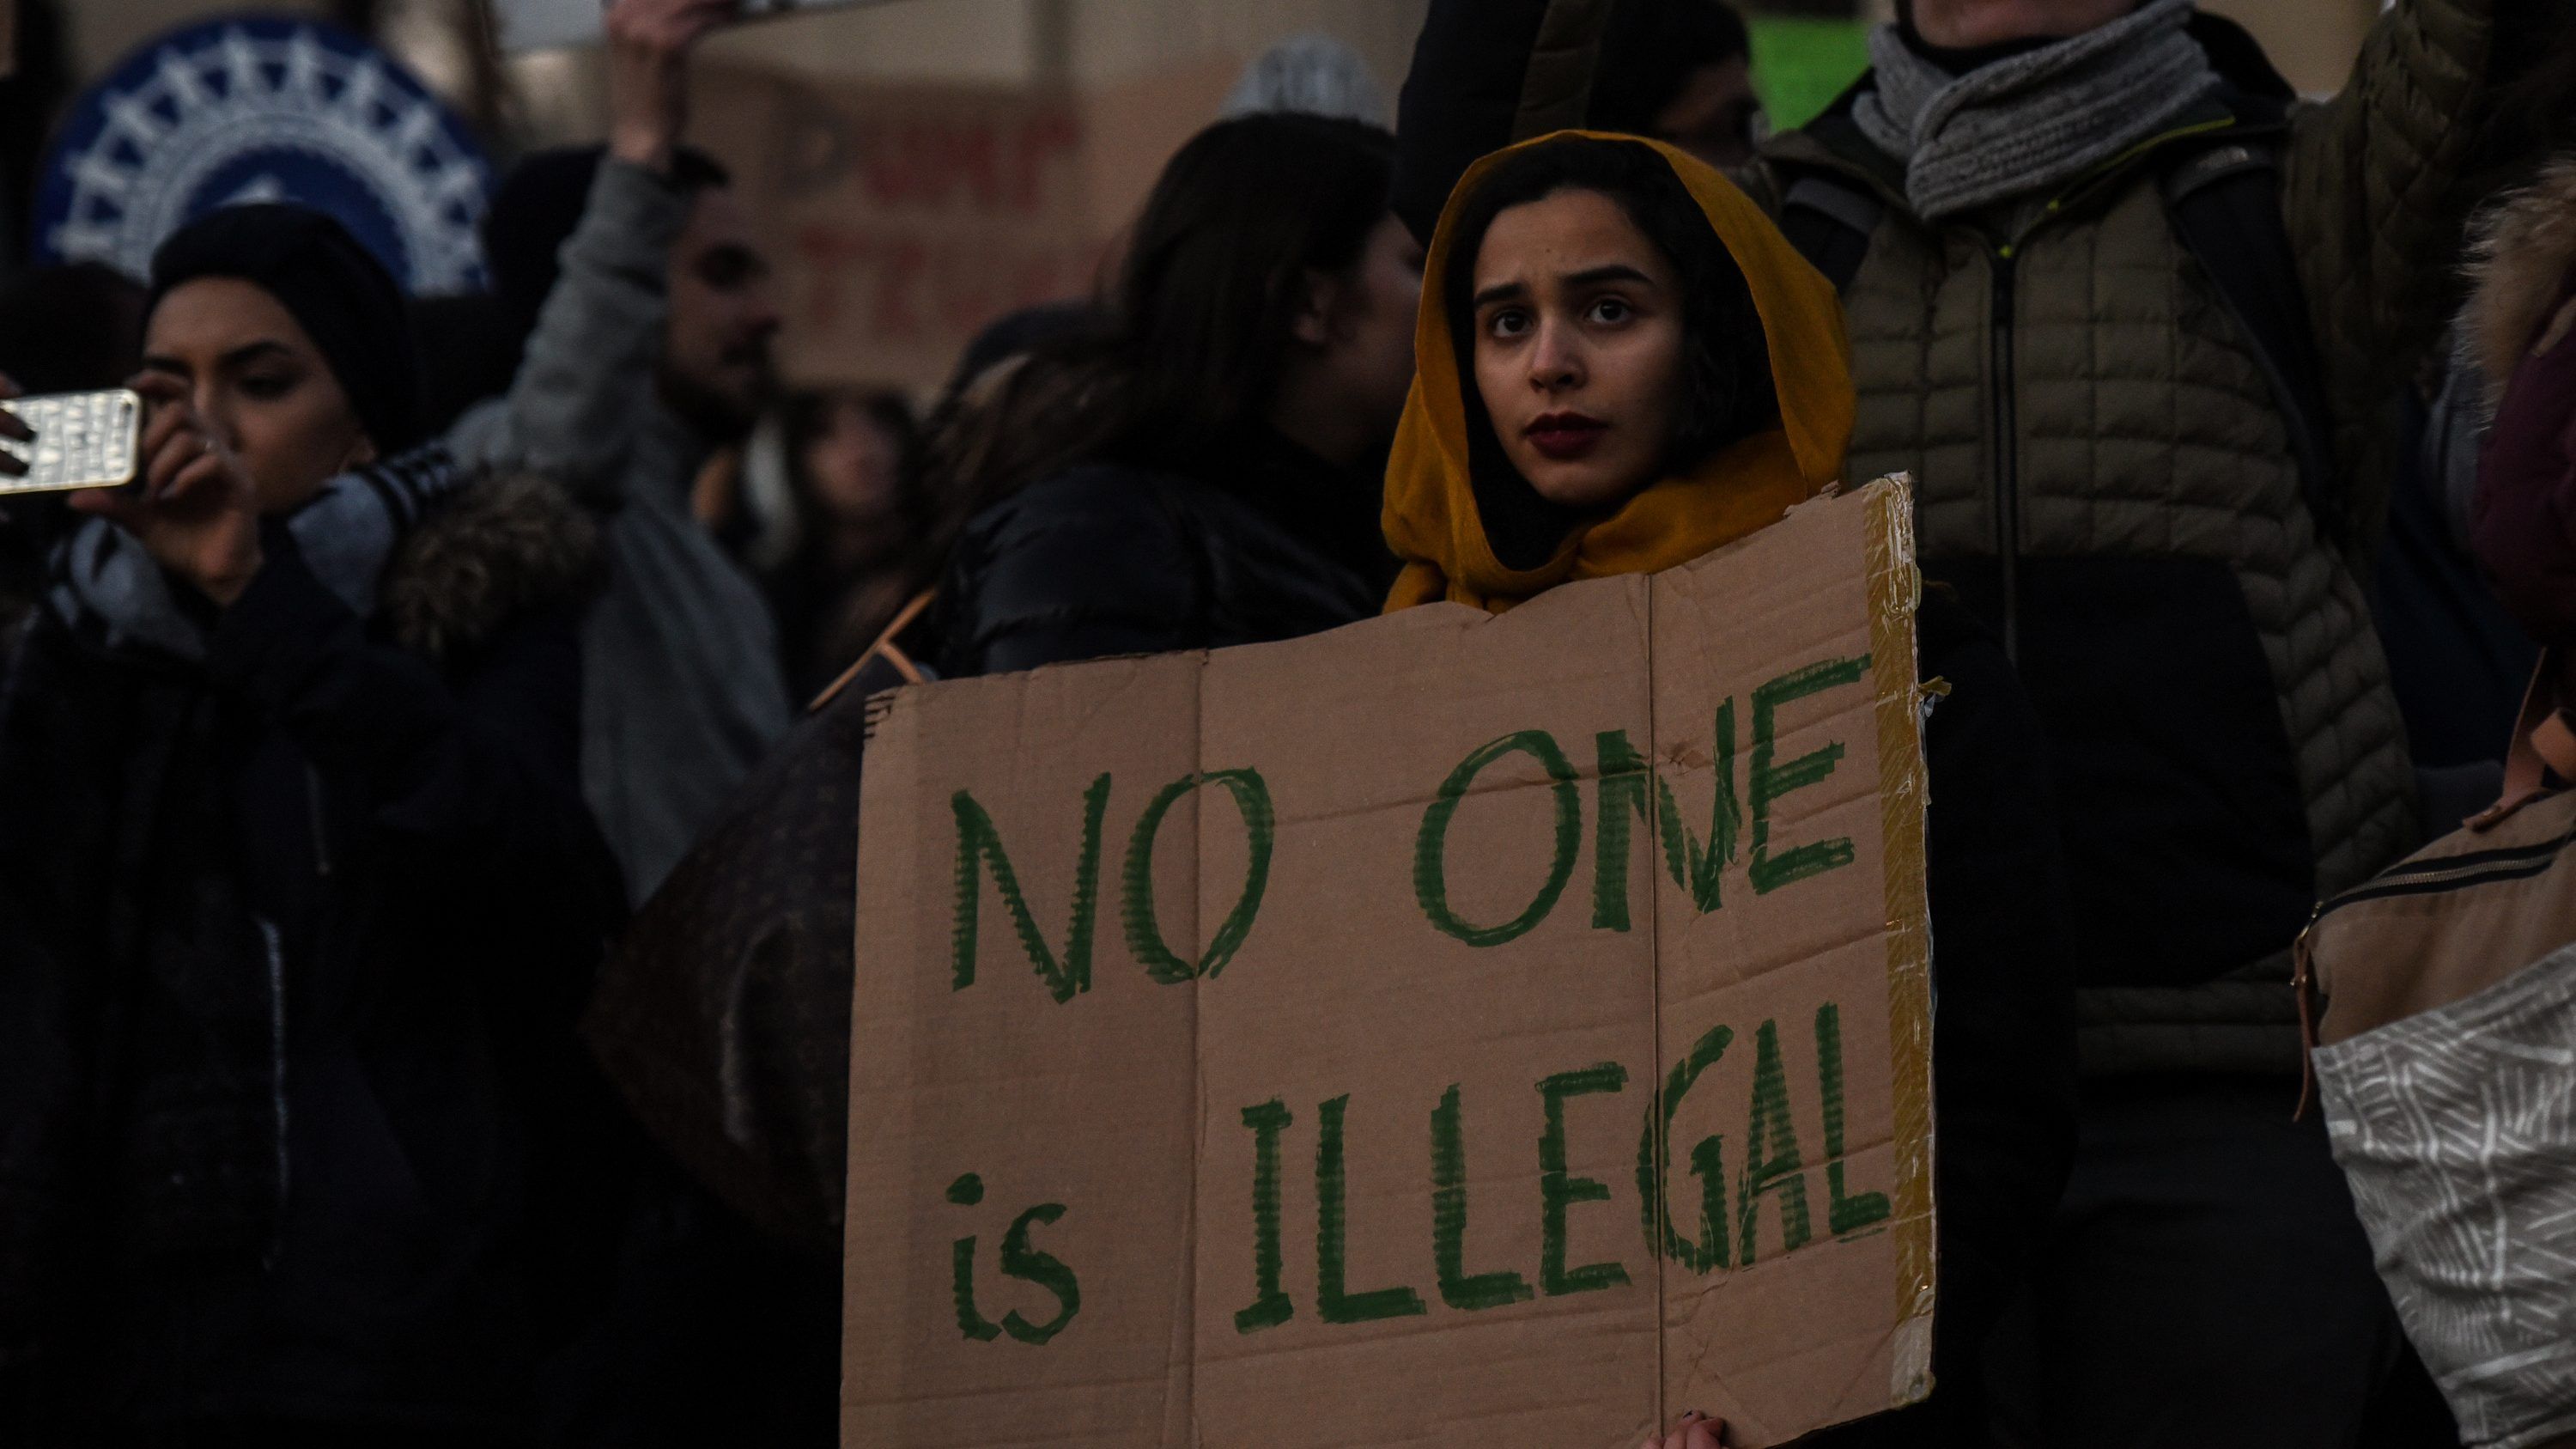 People participate in a protest against President Donald Trump's muslim ban.